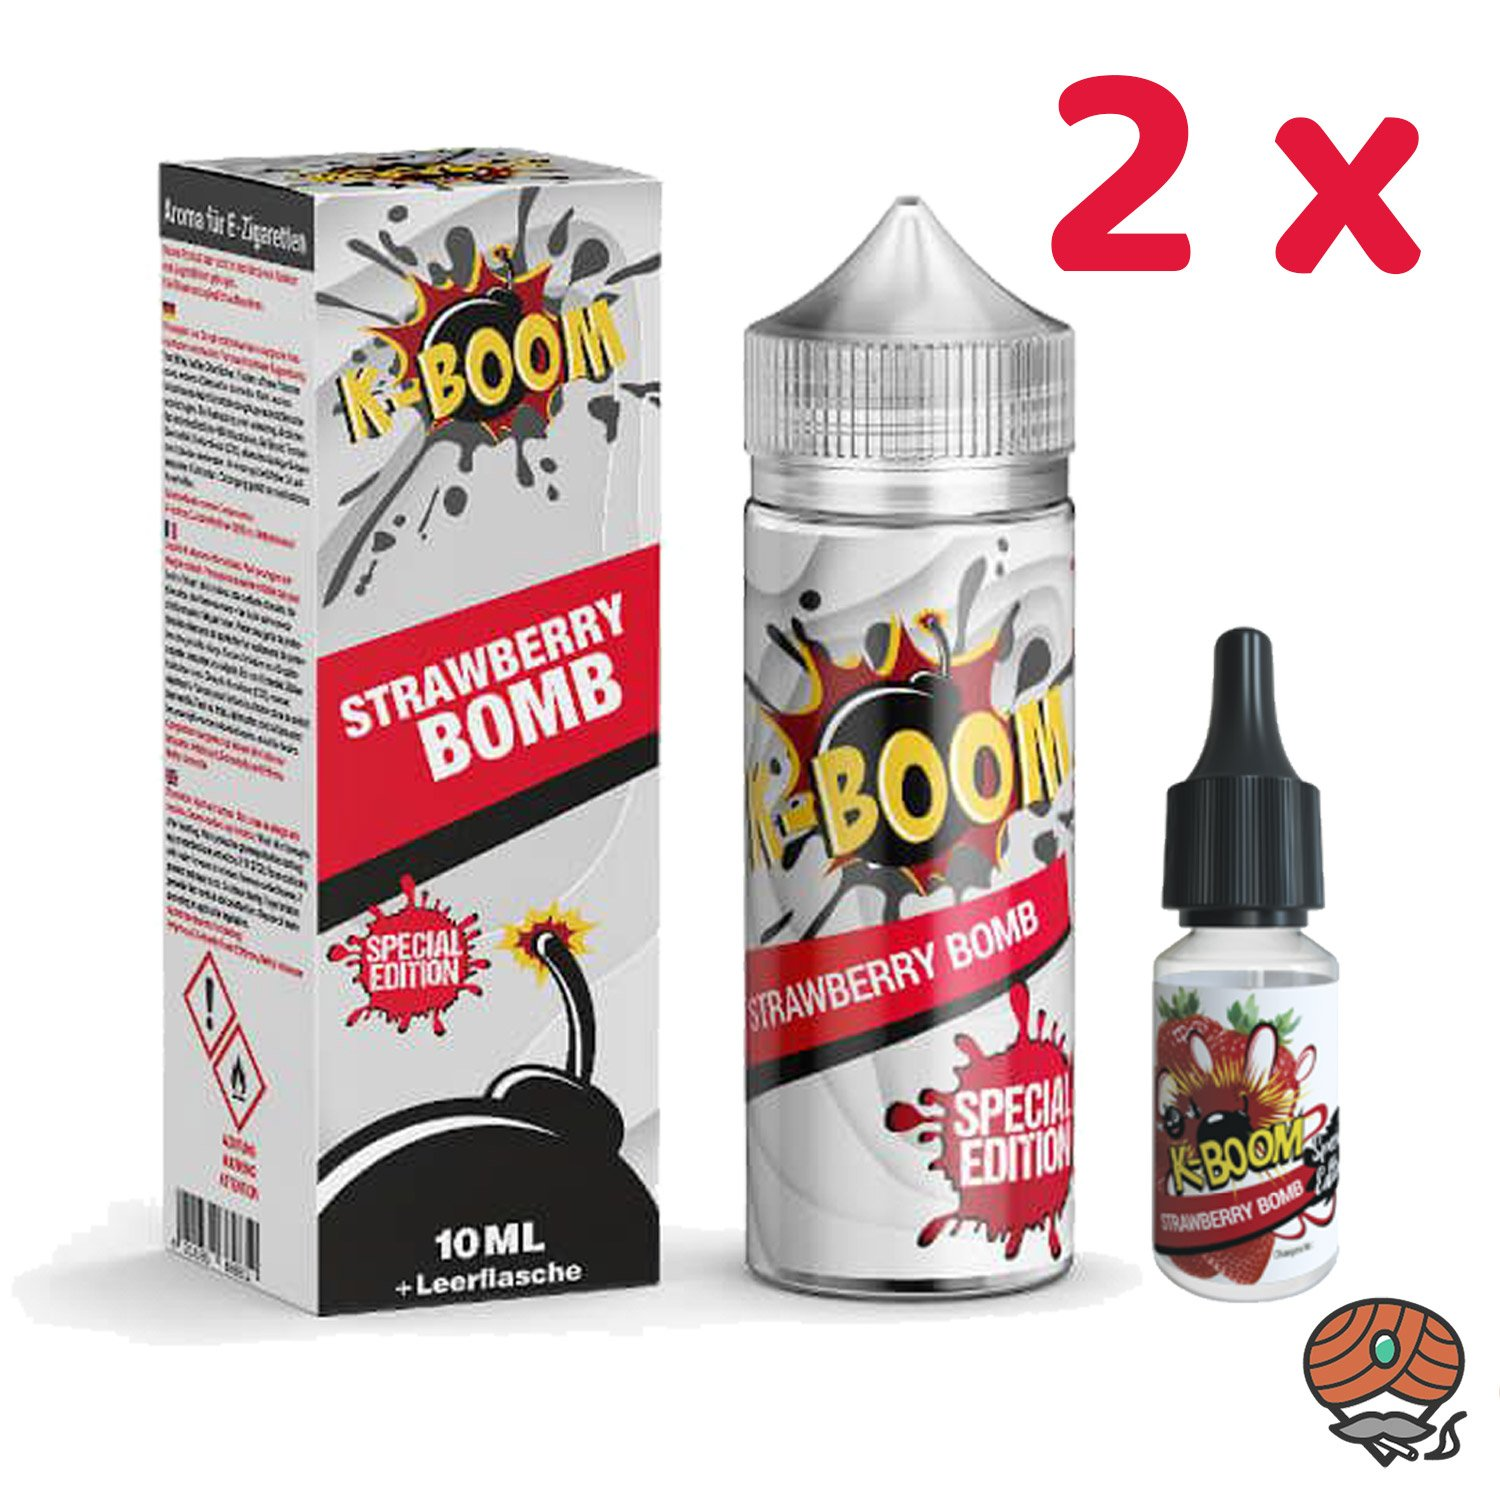 2 x K-BOOM Strawberry Bomb 10 ml Aroma + Leerflasche, Longfill